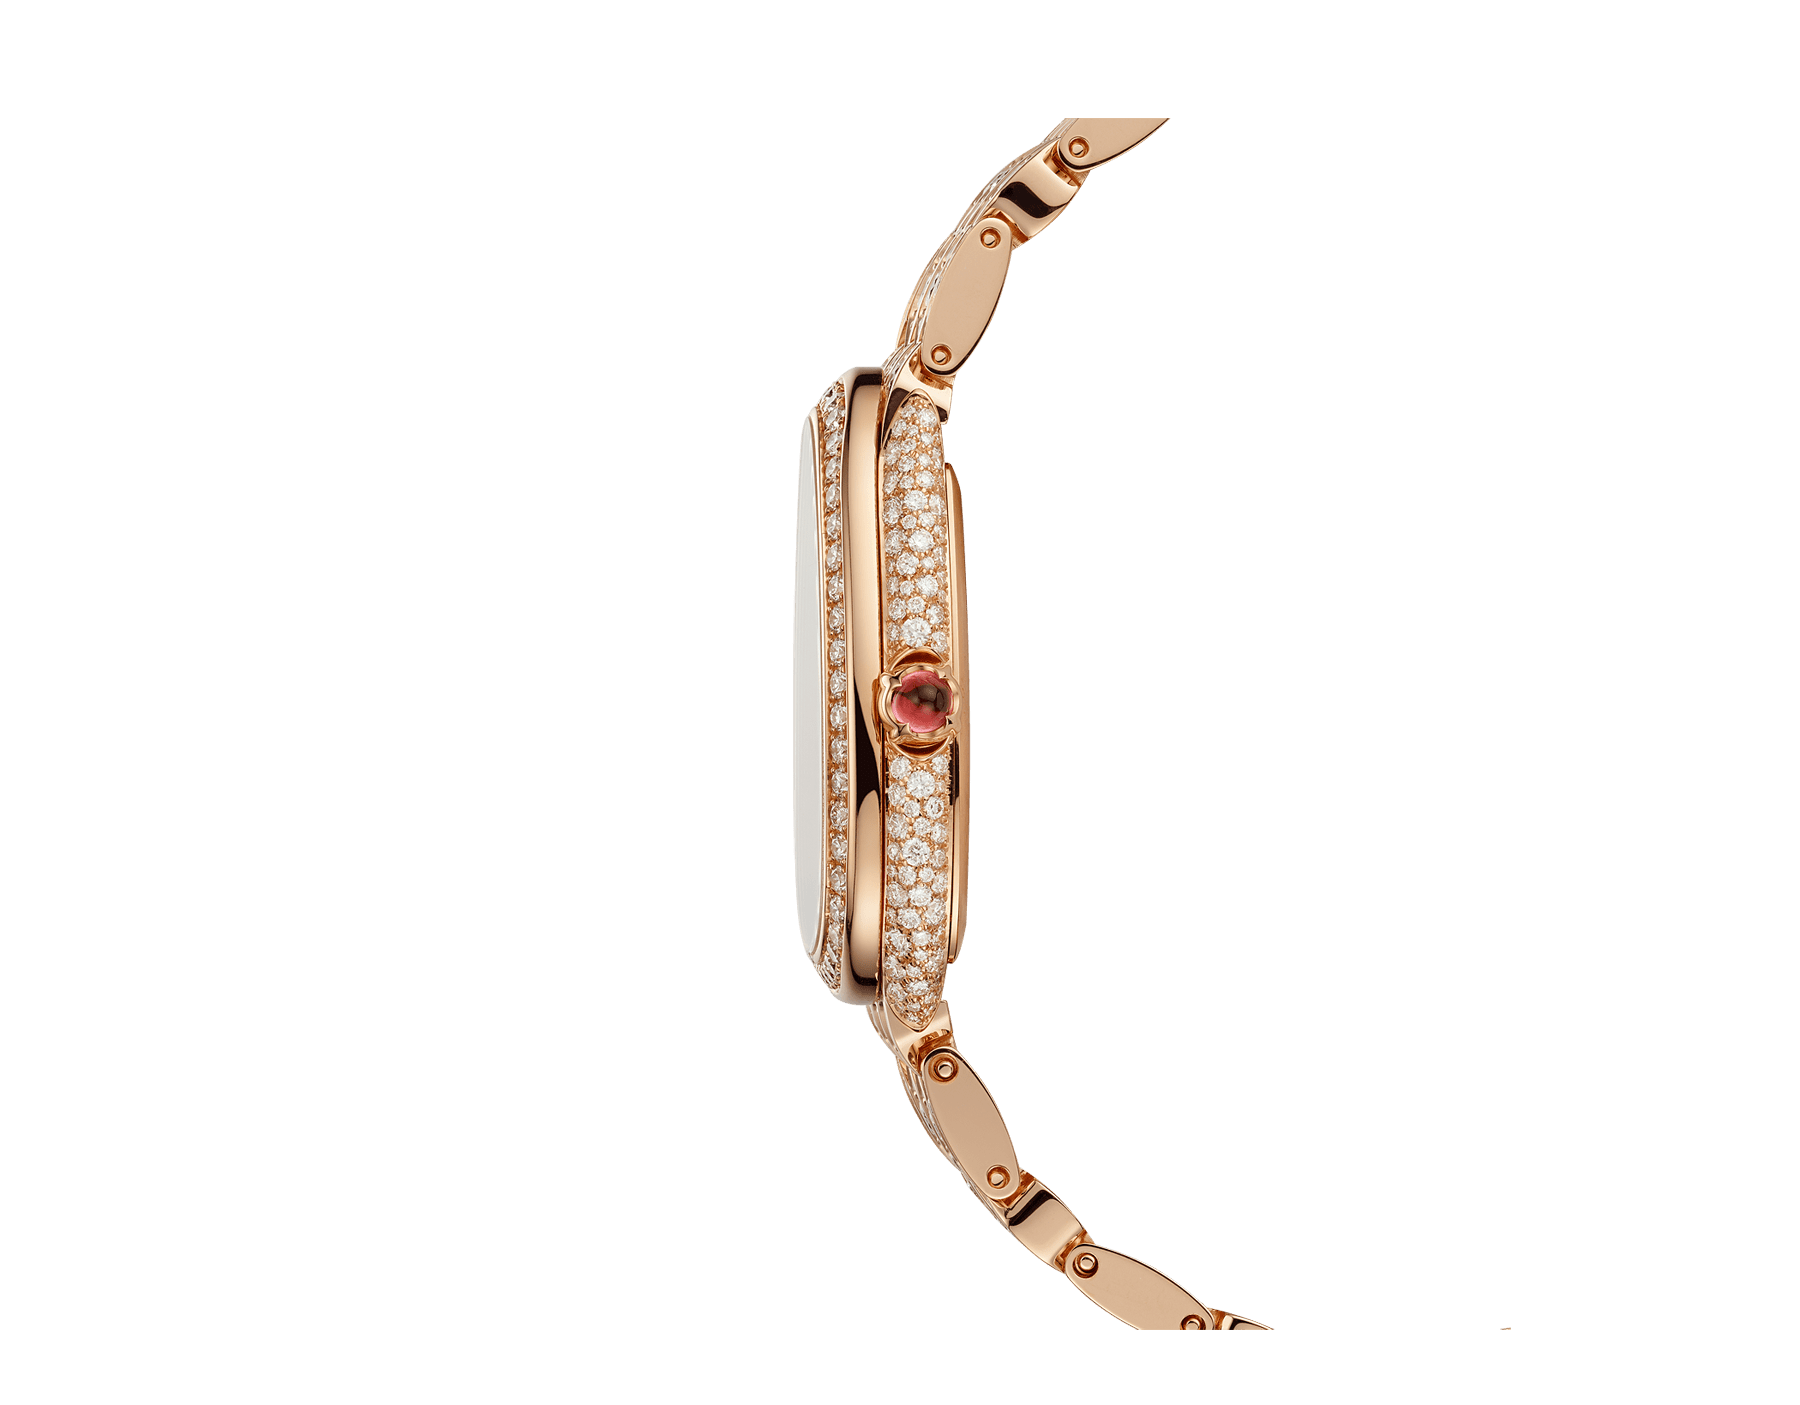 Serpenti Seduttori watch with 18 kt rose gold case and bracelet both set with diamonds, and full pavé dial 103160 image 3